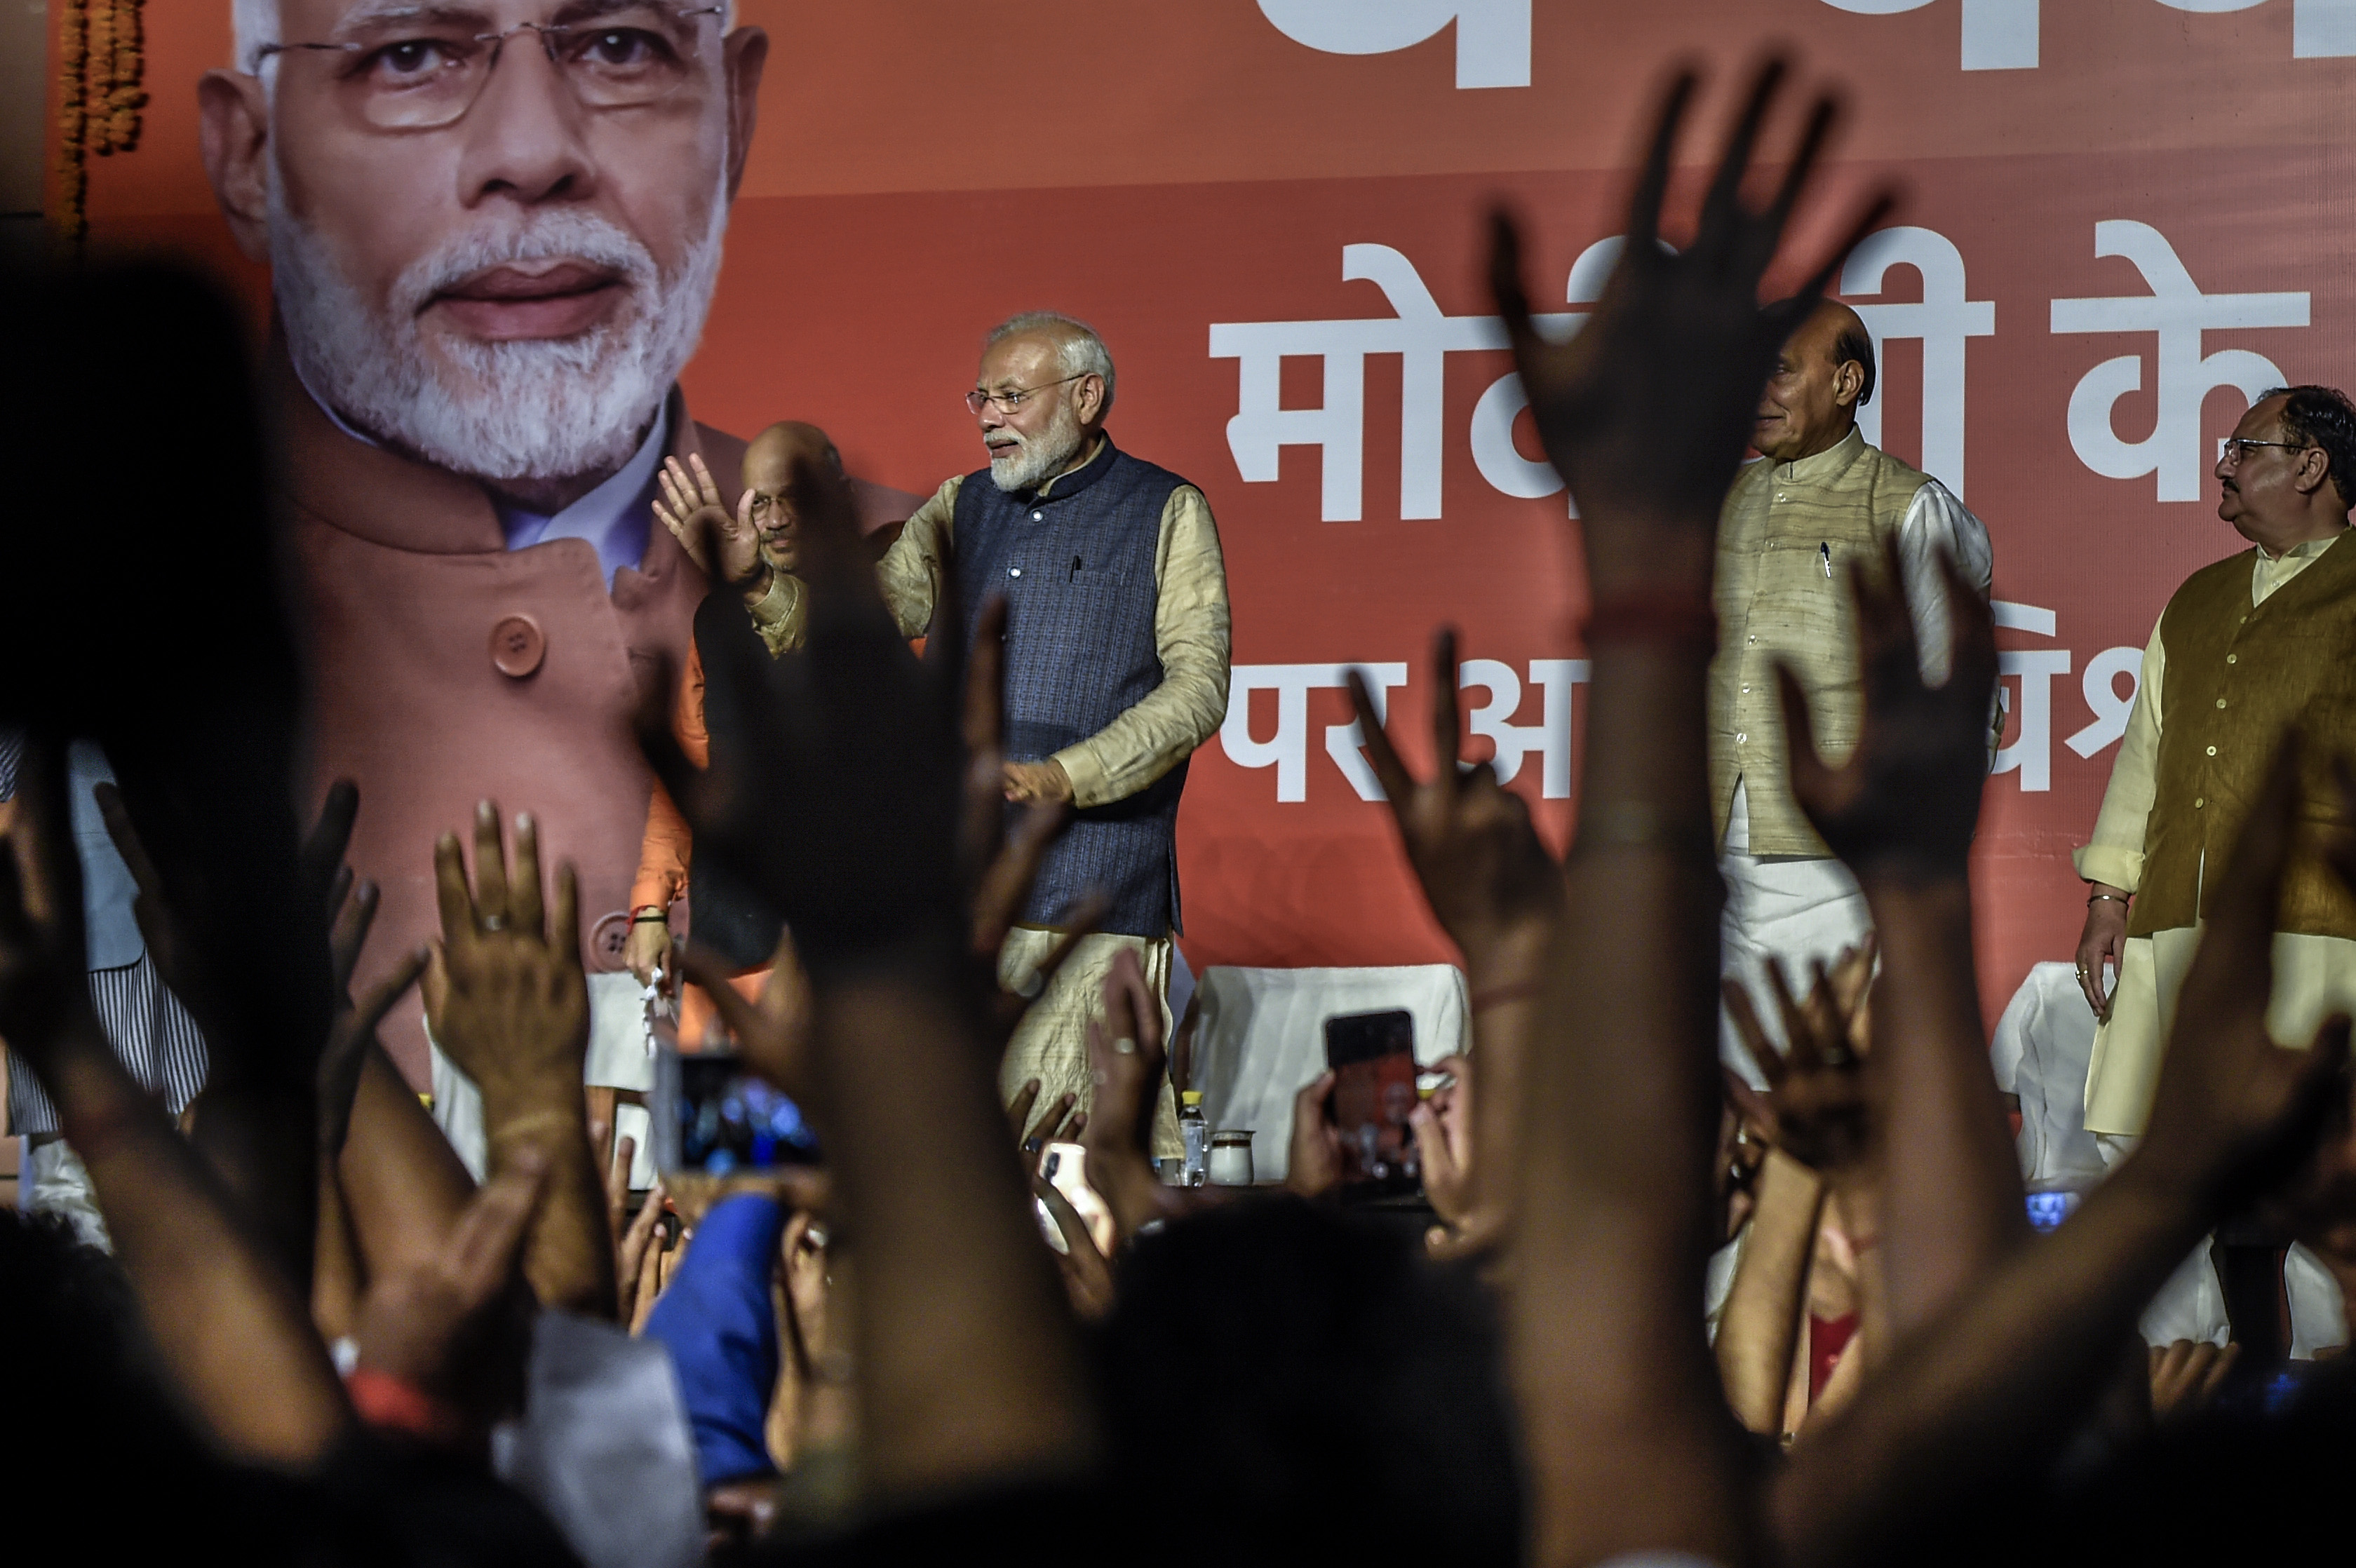 Indian Prime Minister Narendra Modi talks to party workers at Bharatiya Janata Party's headquarters in New Delhi, India.